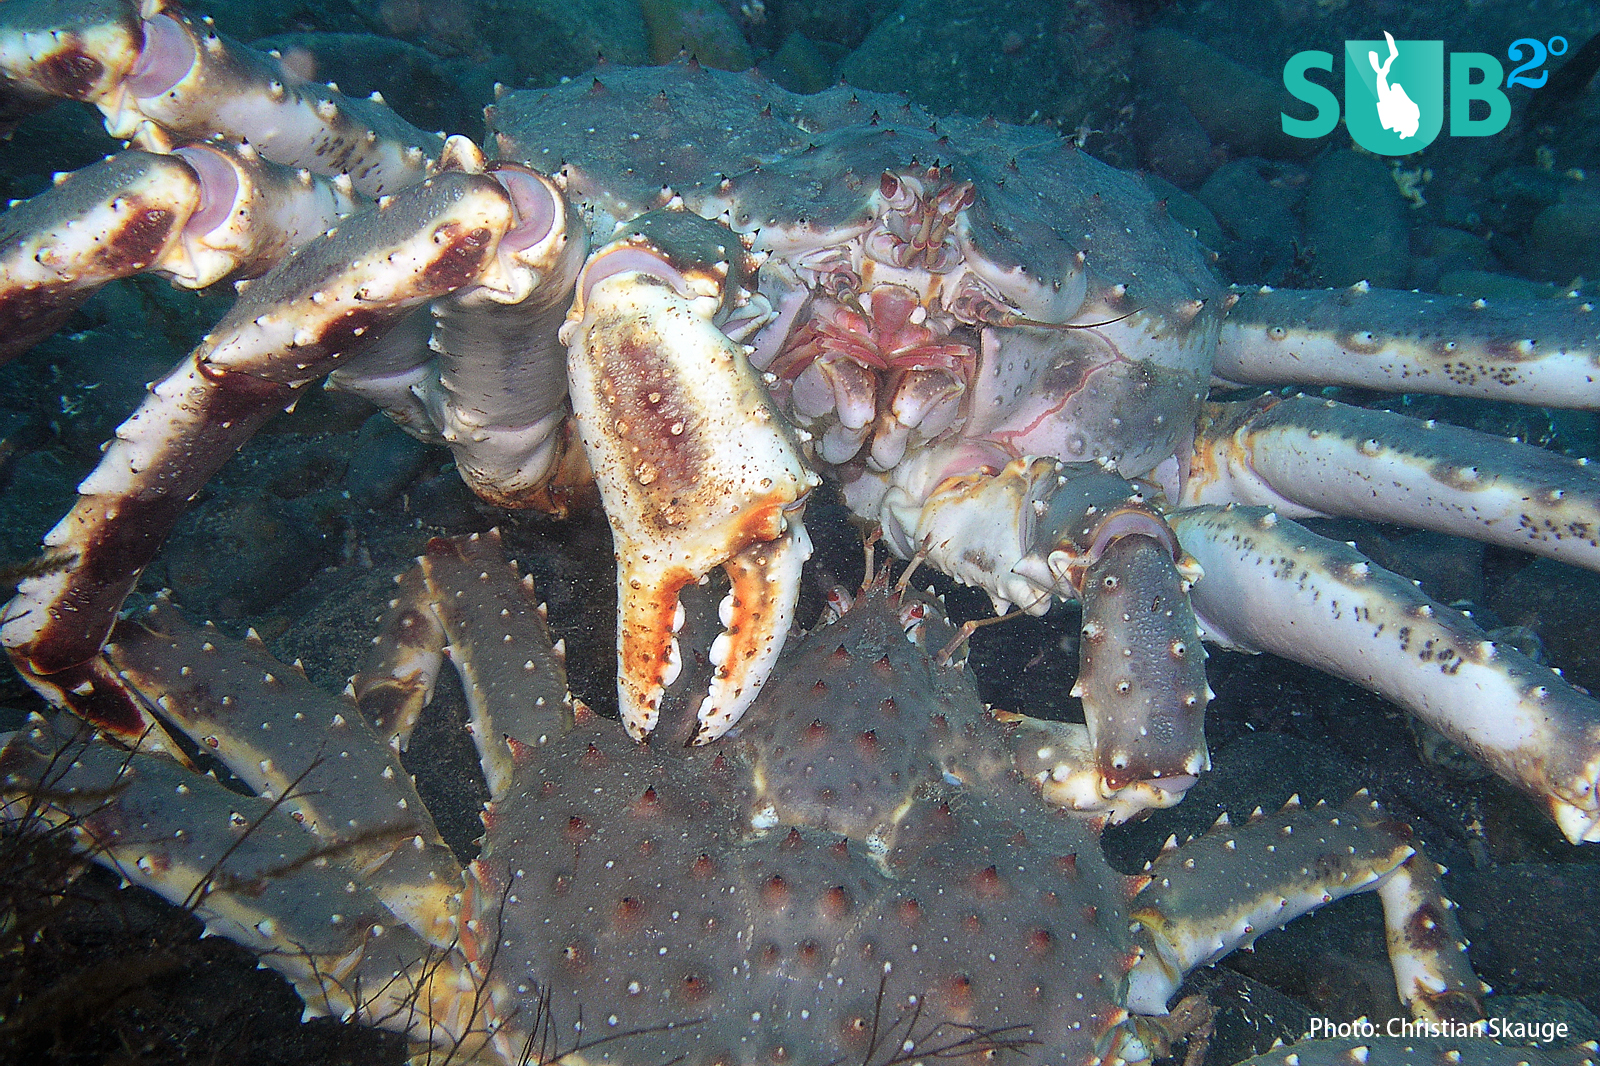 King crabs mating